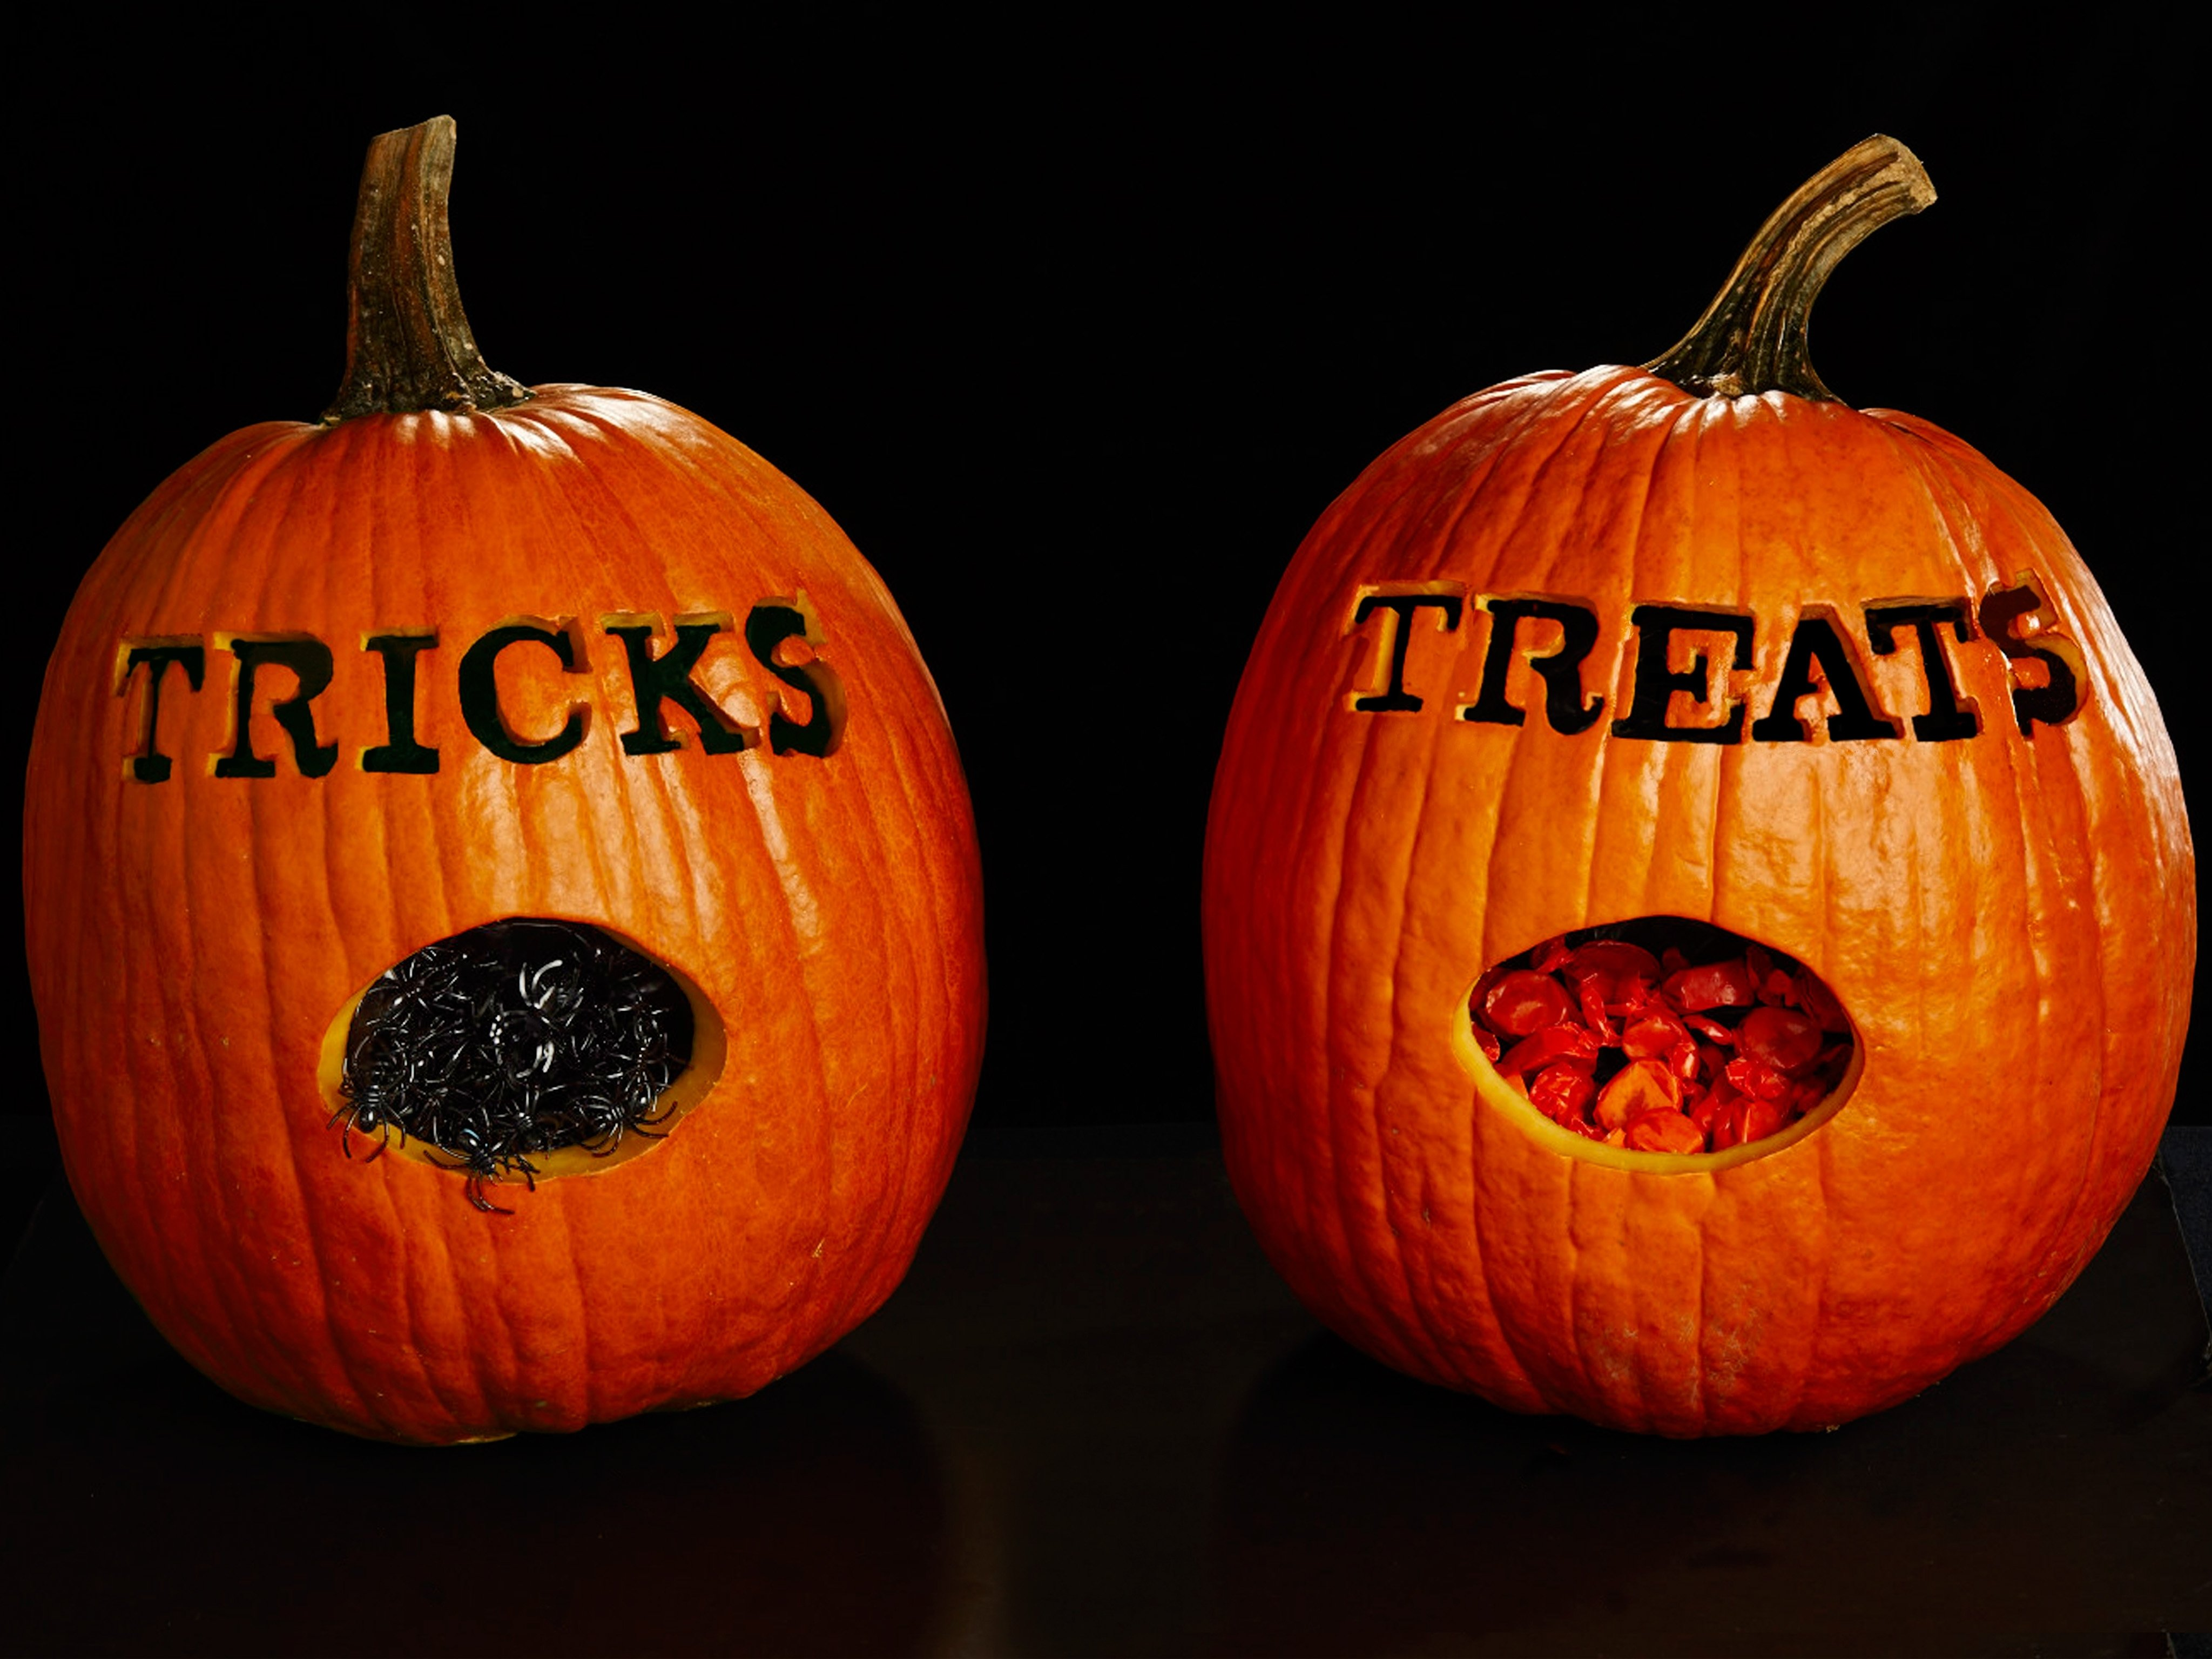 10 Famous Pumpkin Carving Ideas For Girls top halloween pumpkin carvings to try in 2015 the artistic soul 2020